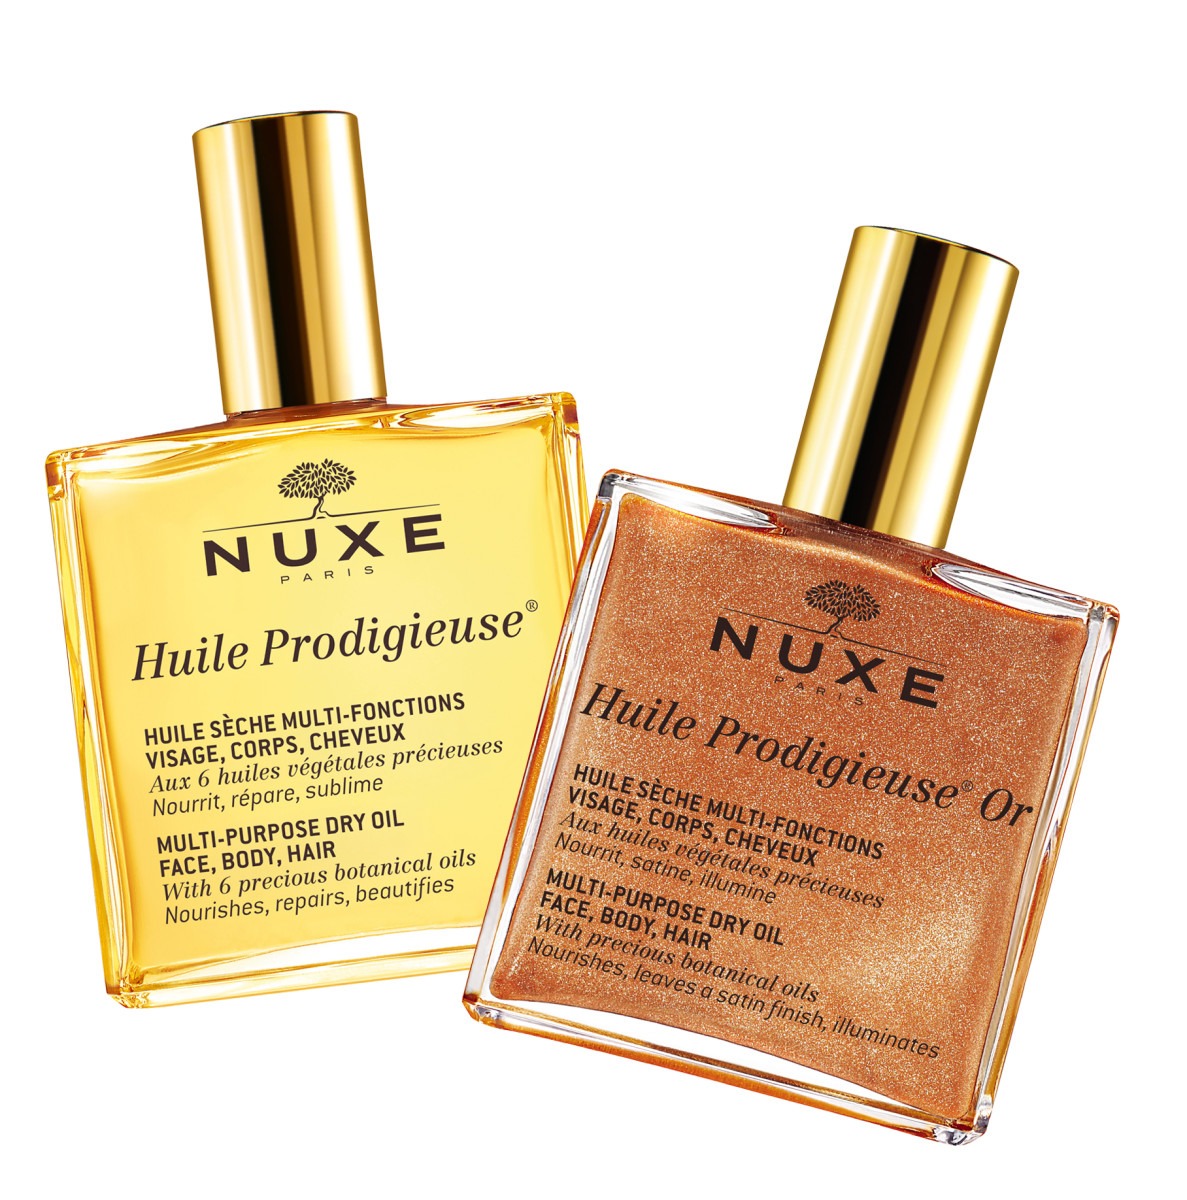 Nuxe Huile Prodigieuse and Huile Prodigieuse Or – you could win both!